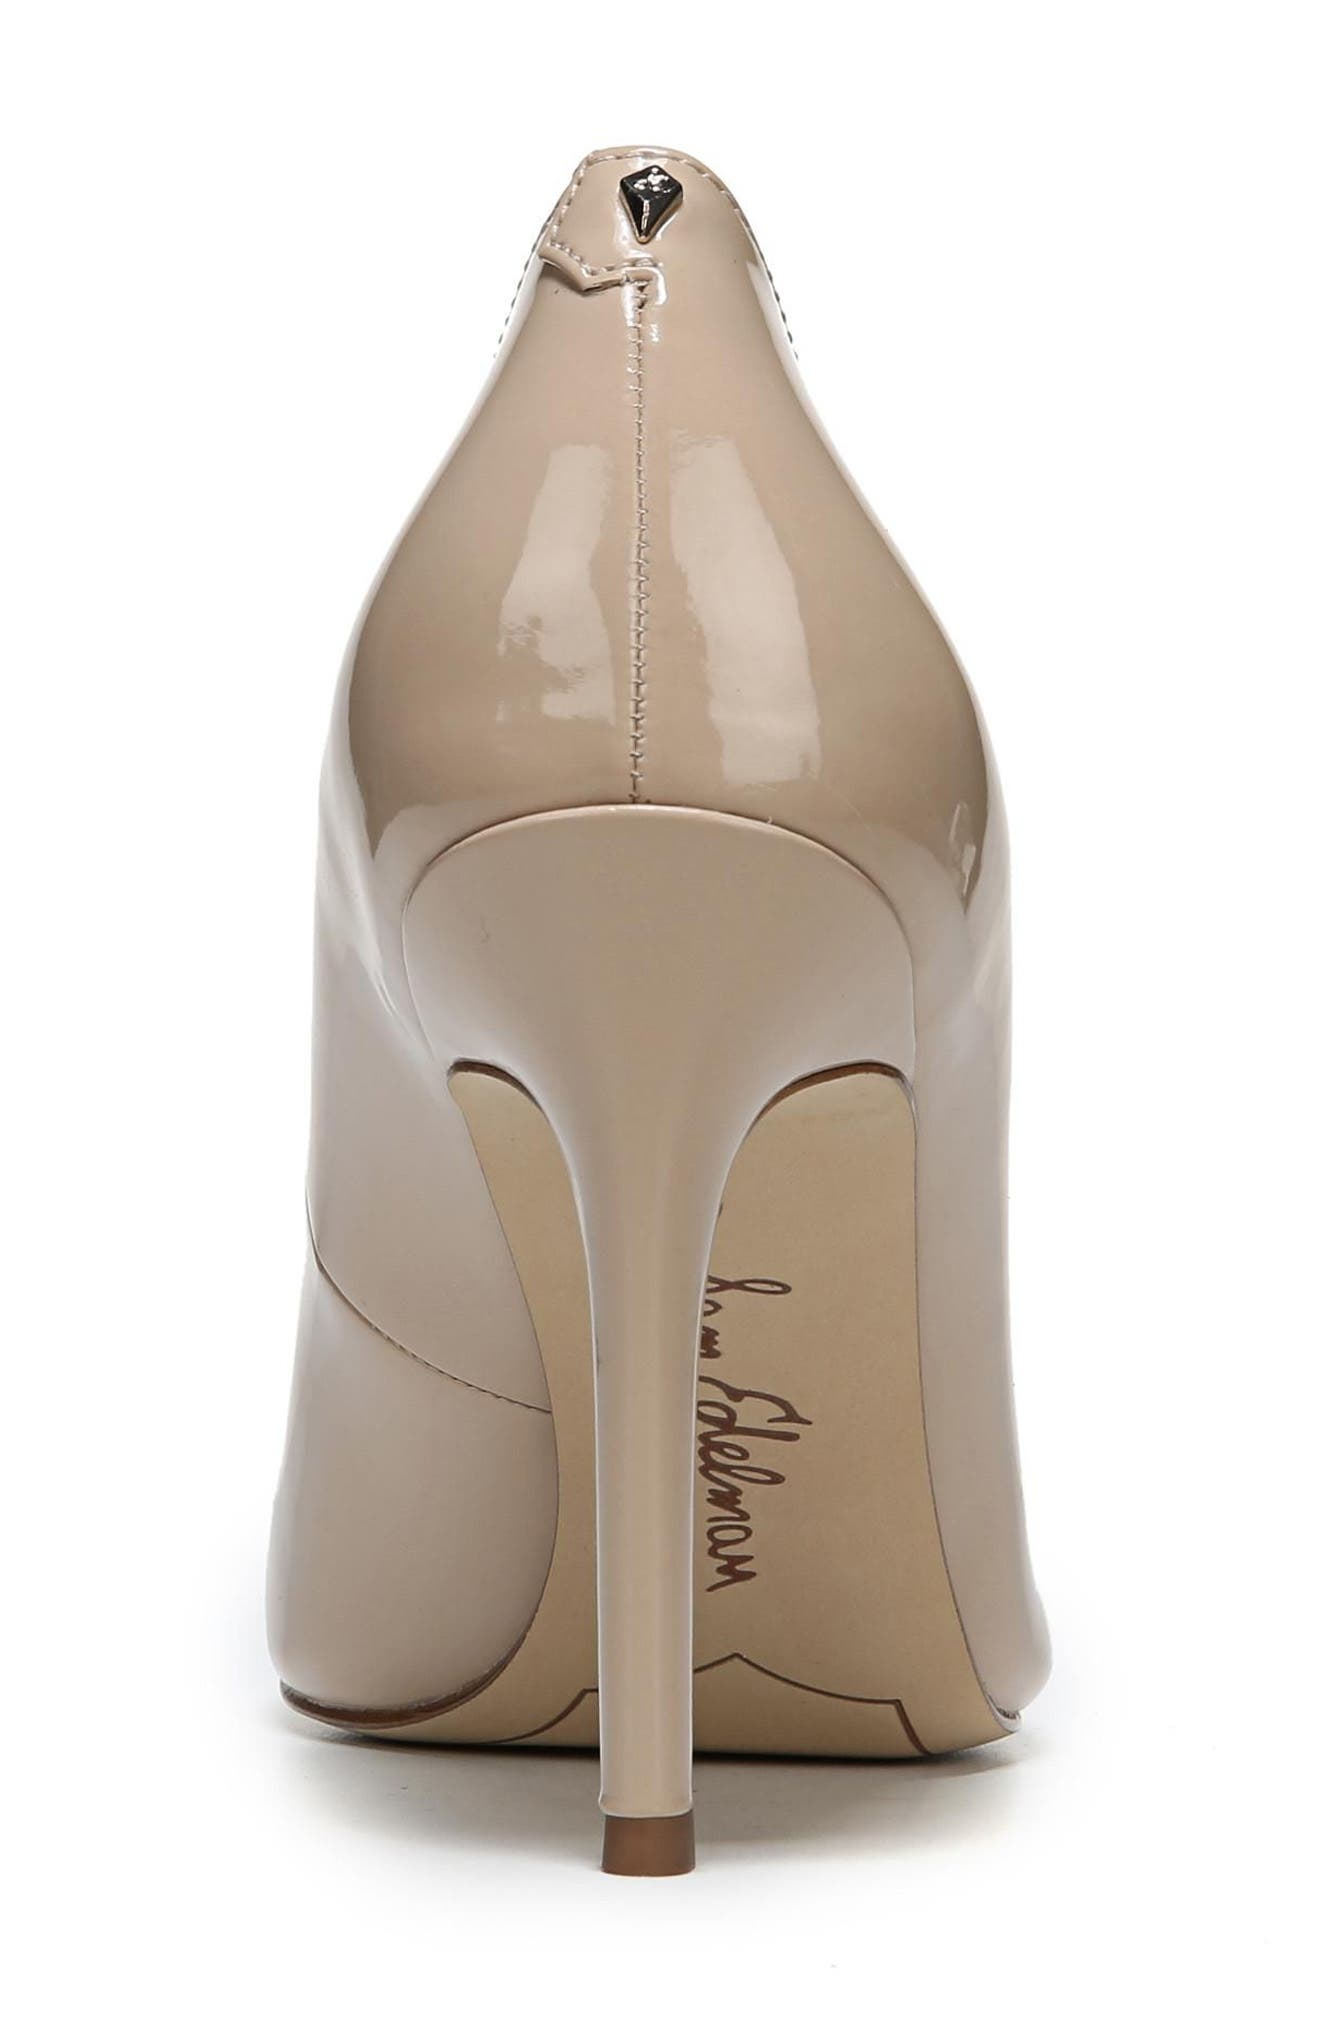 SAM EDELMAN, Hazel Pointy Toe Pump, Alternate thumbnail 9, color, NUDE LINEN PATENT LEATHER